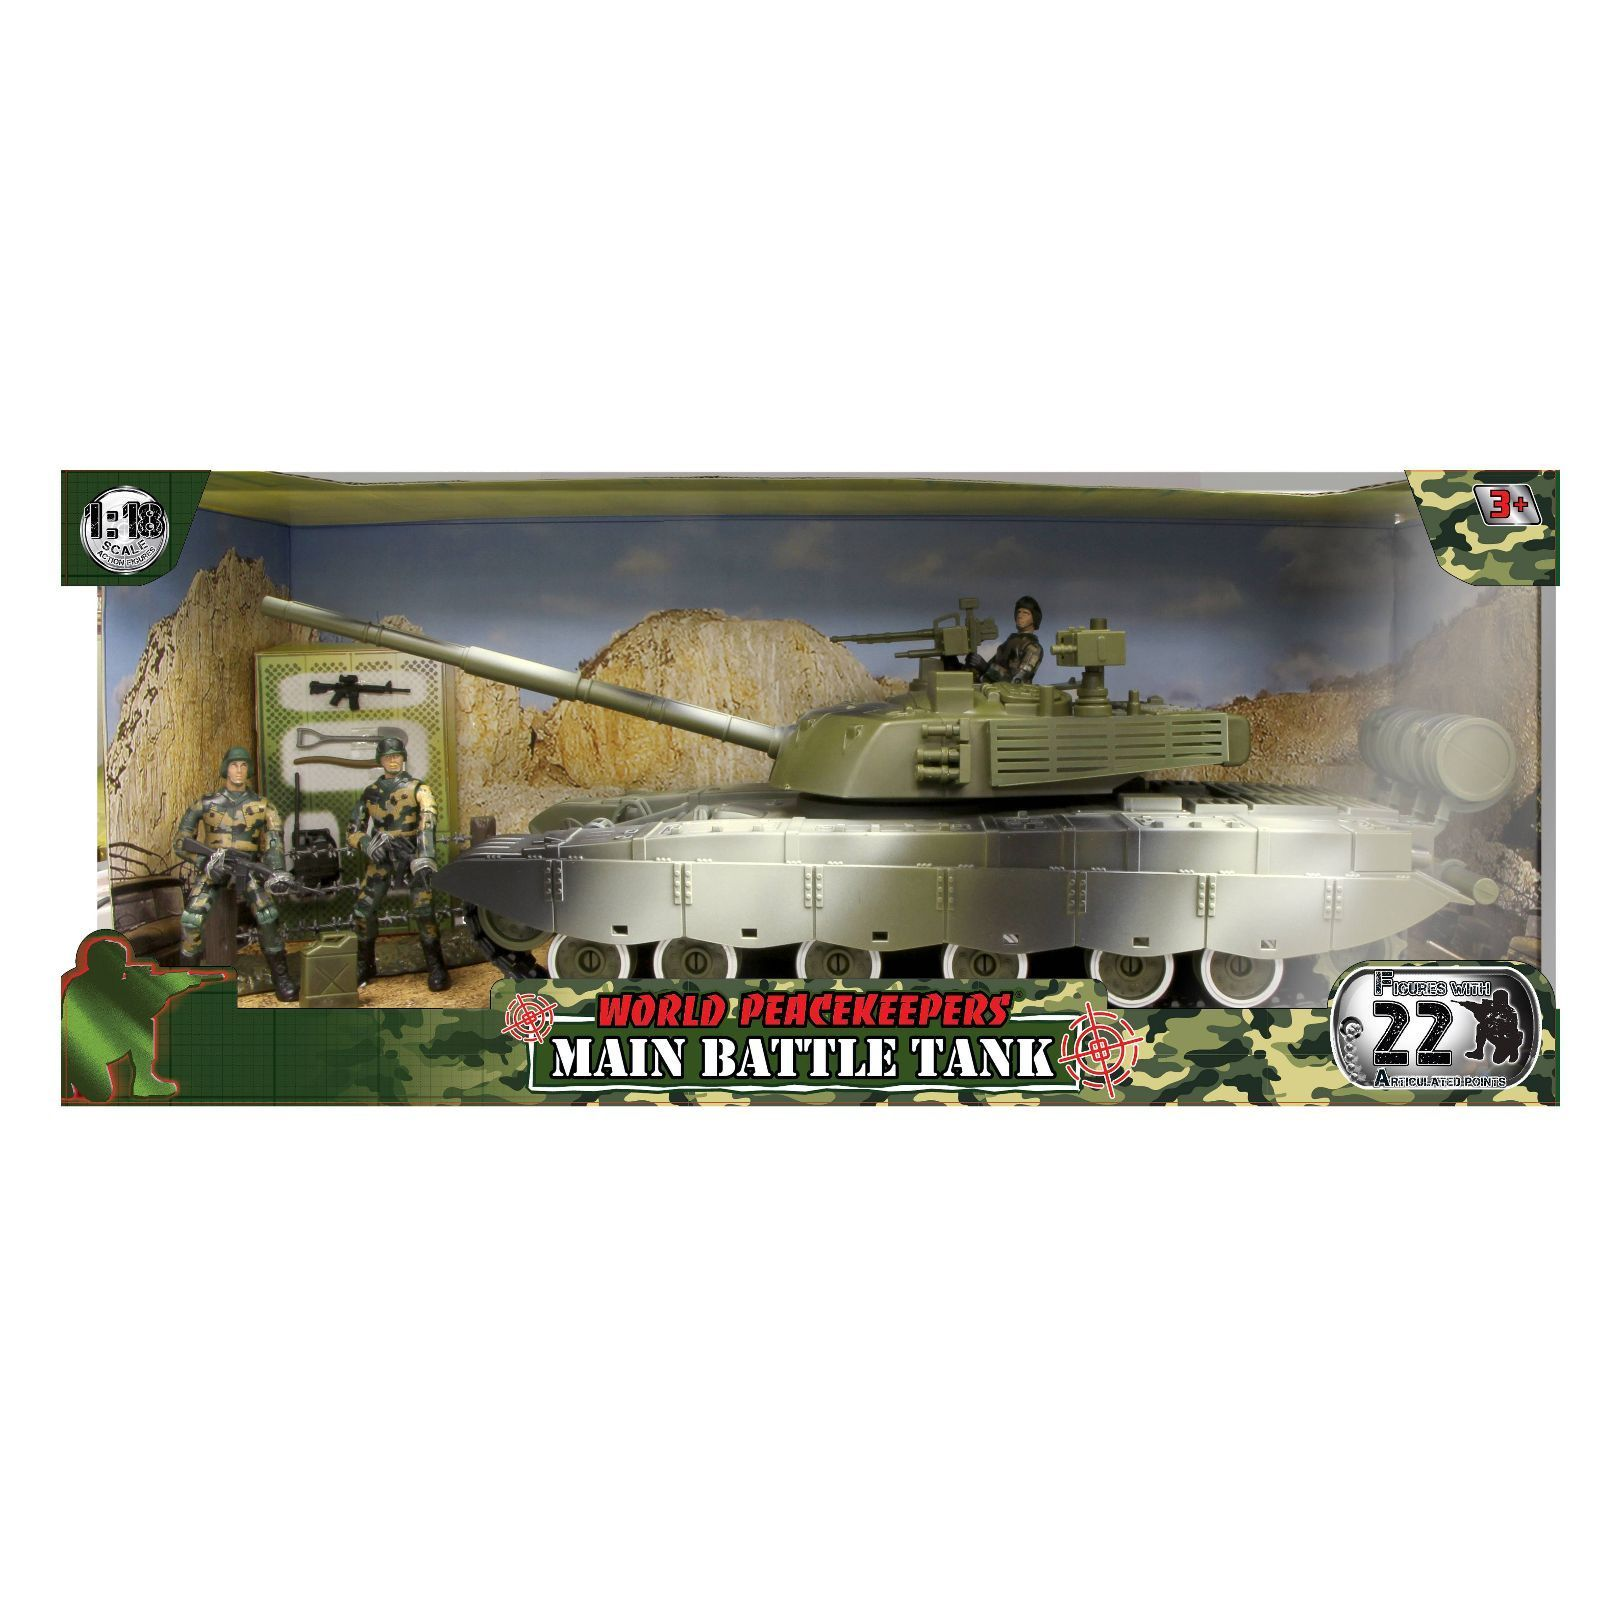 World Peacekeepers Military Main Battle Tank Army Toy with figures